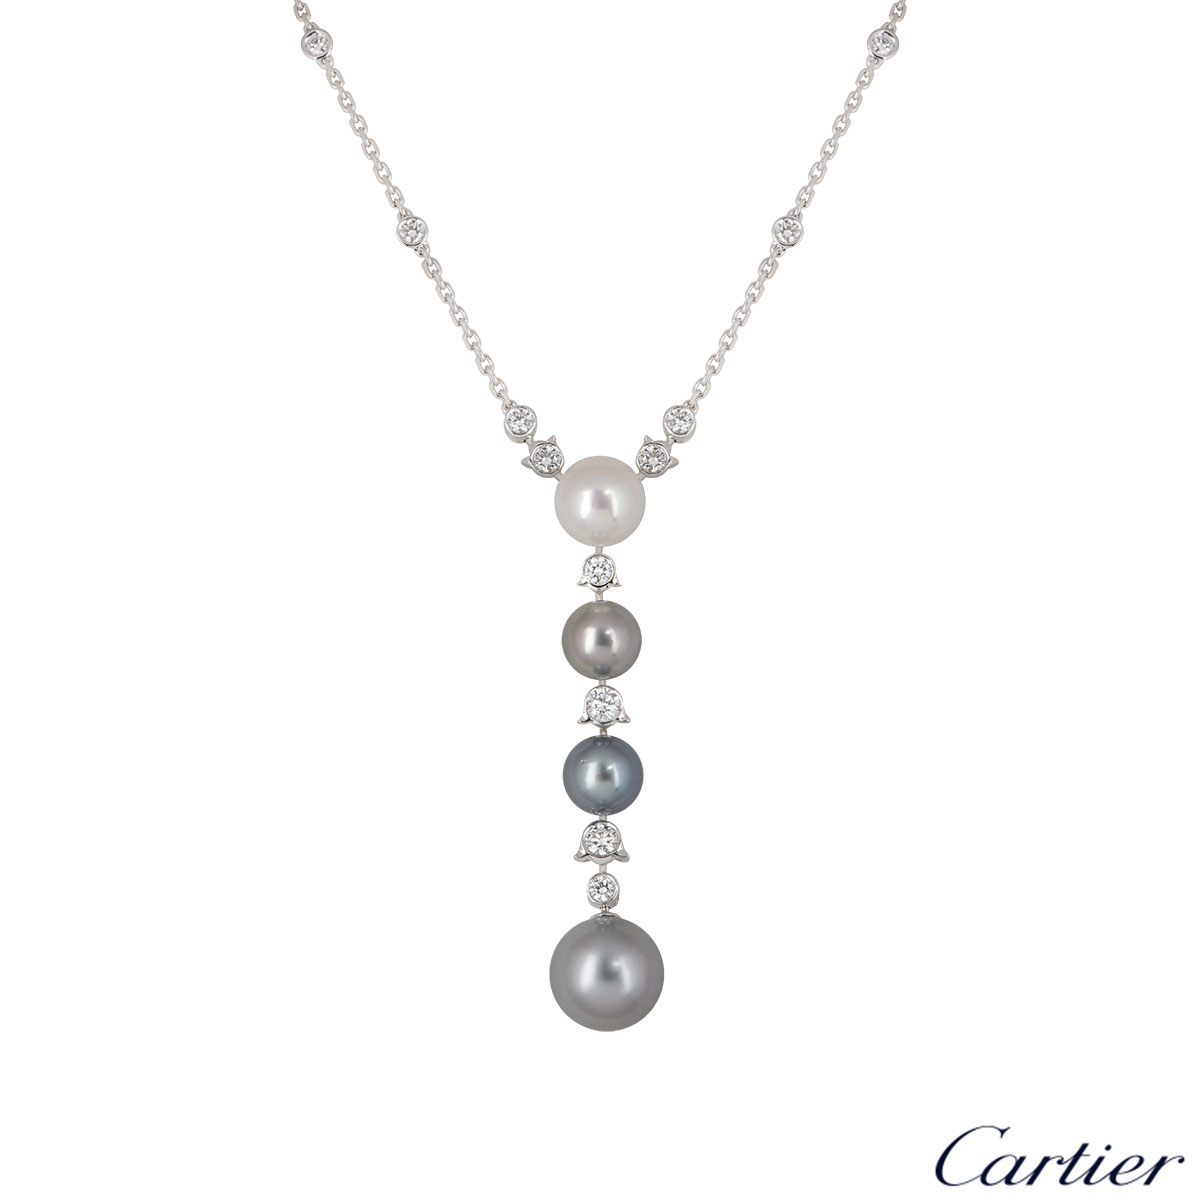 Cartier Platinum Diamond and Pearl Calin Necklace